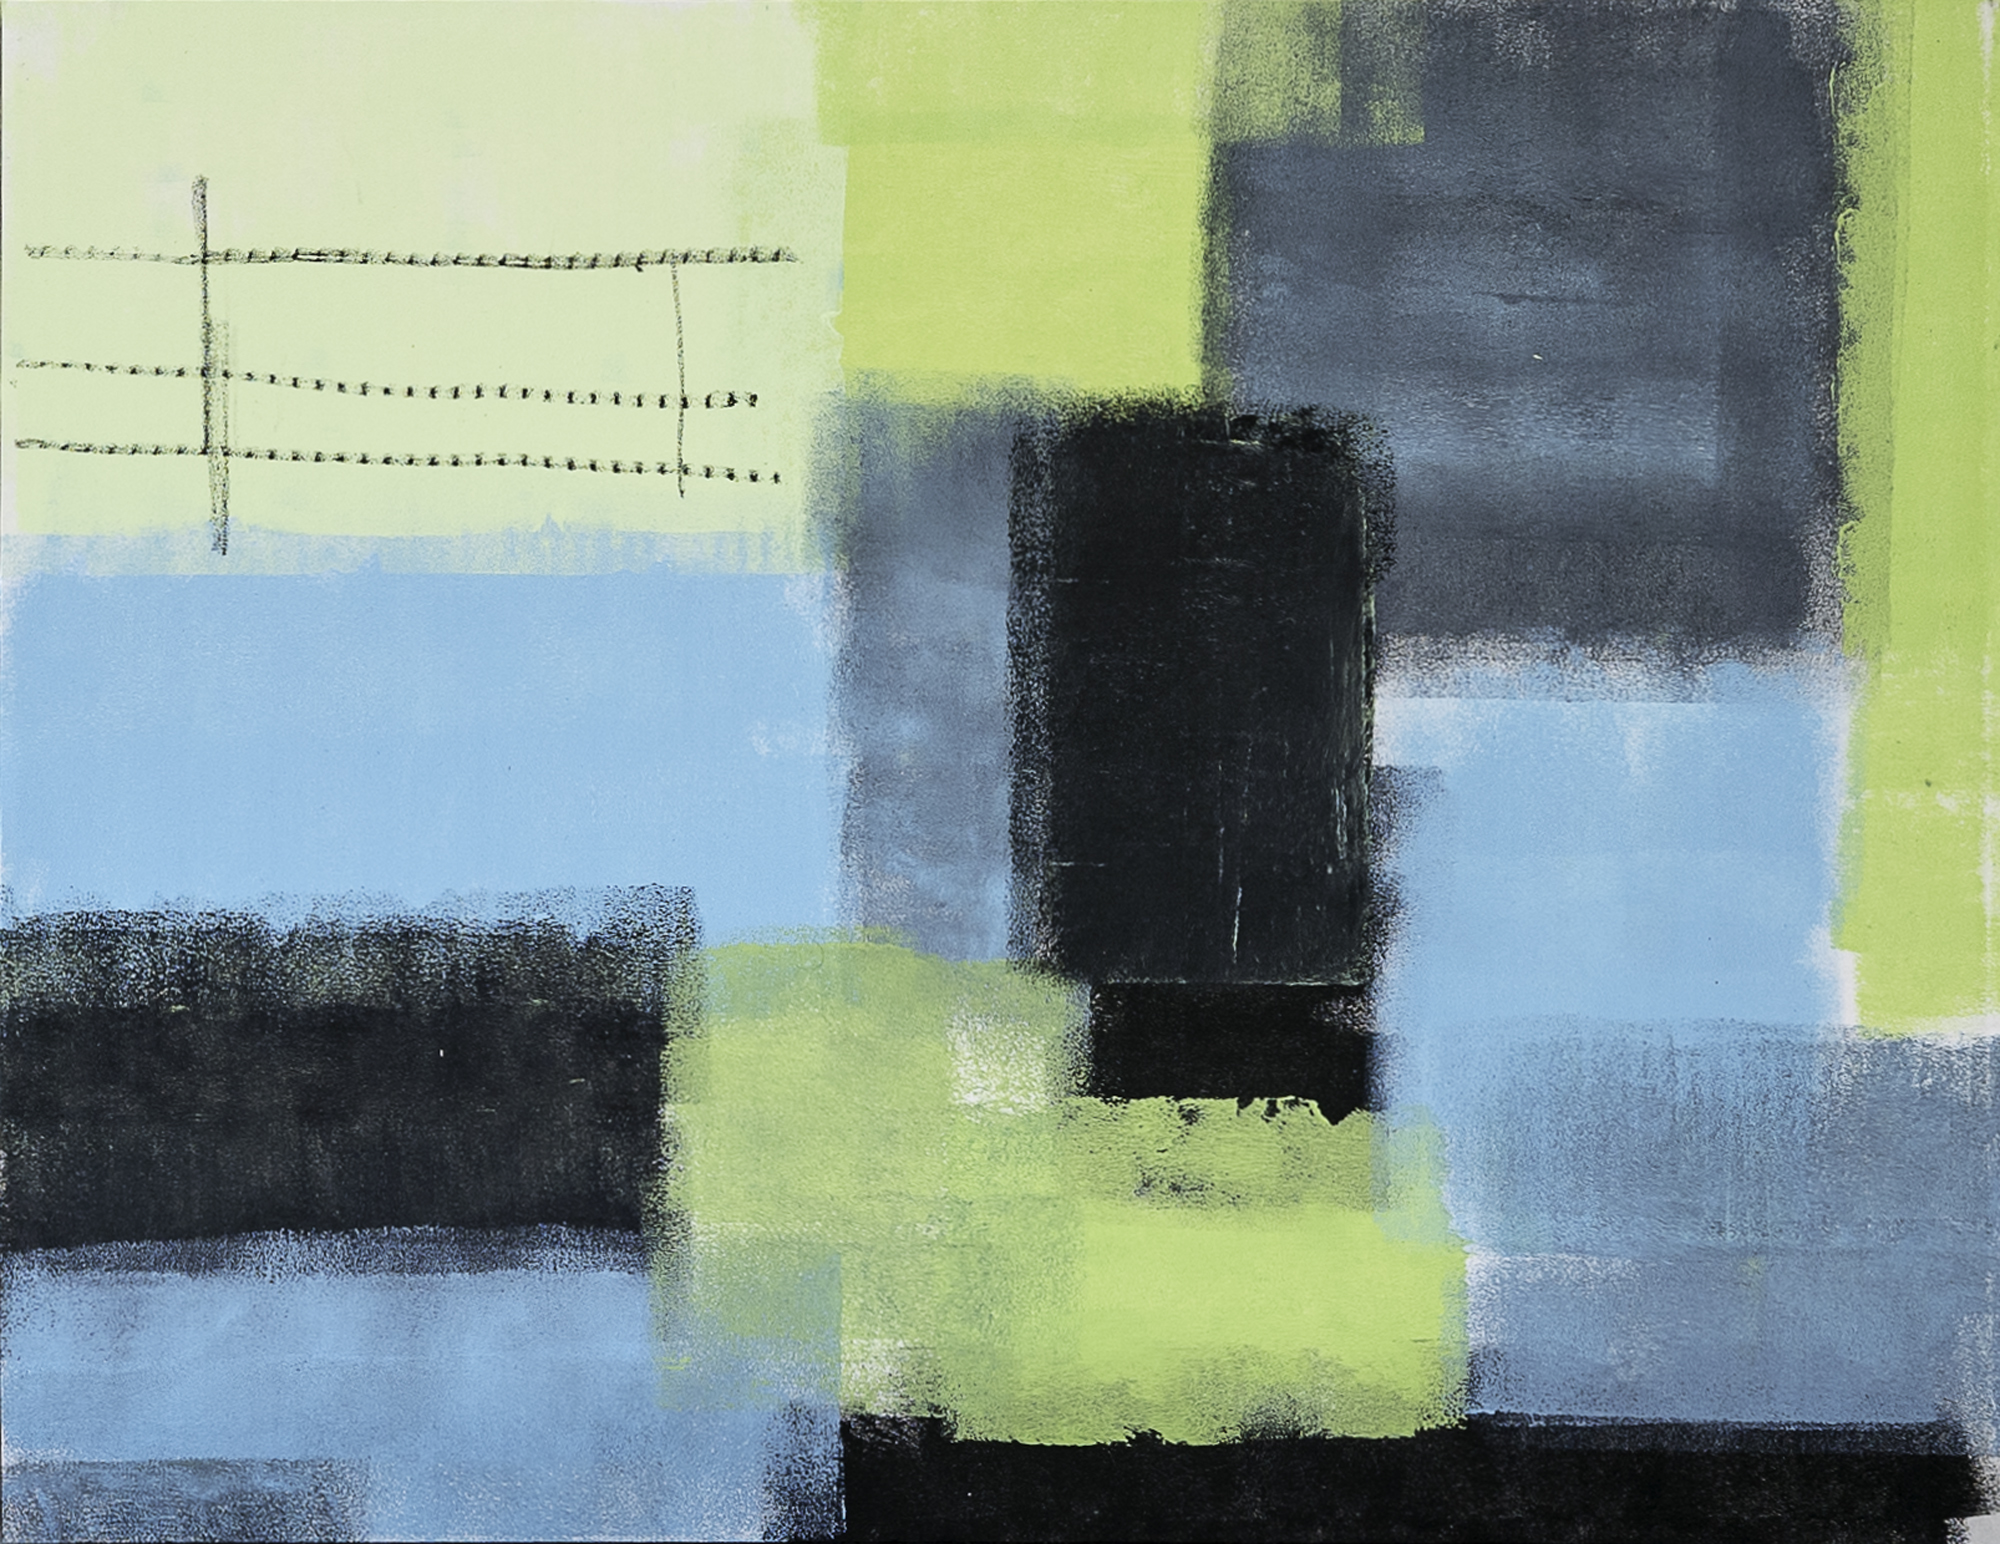 """""""Memoryscapes: Blurry Lines III No. 14"""""""